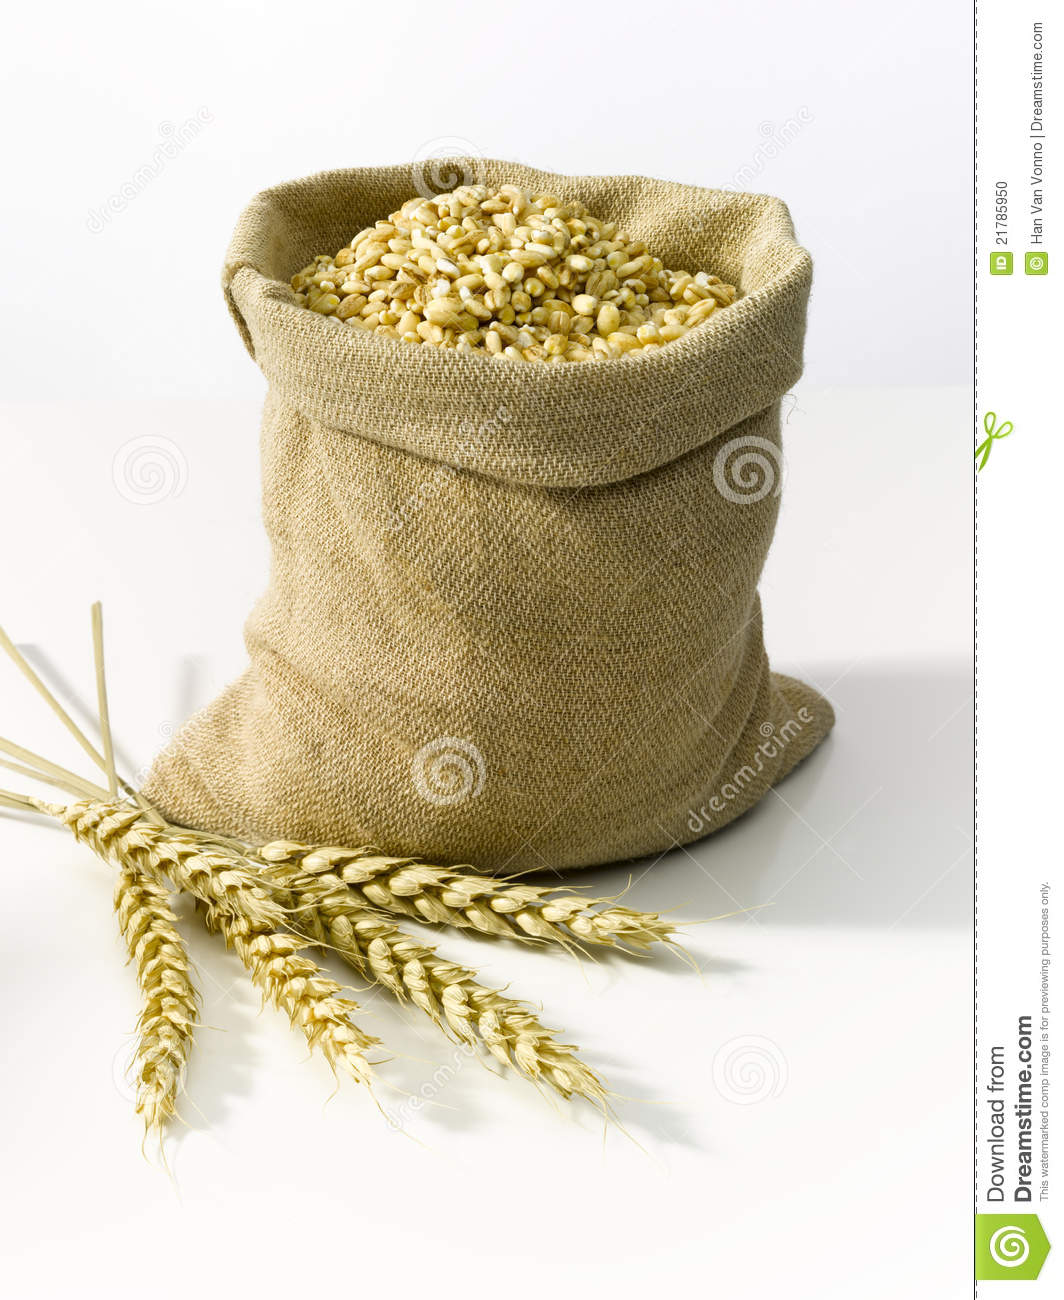 Bag With Cereal Stock Photo. Image Of Harvest, Golden